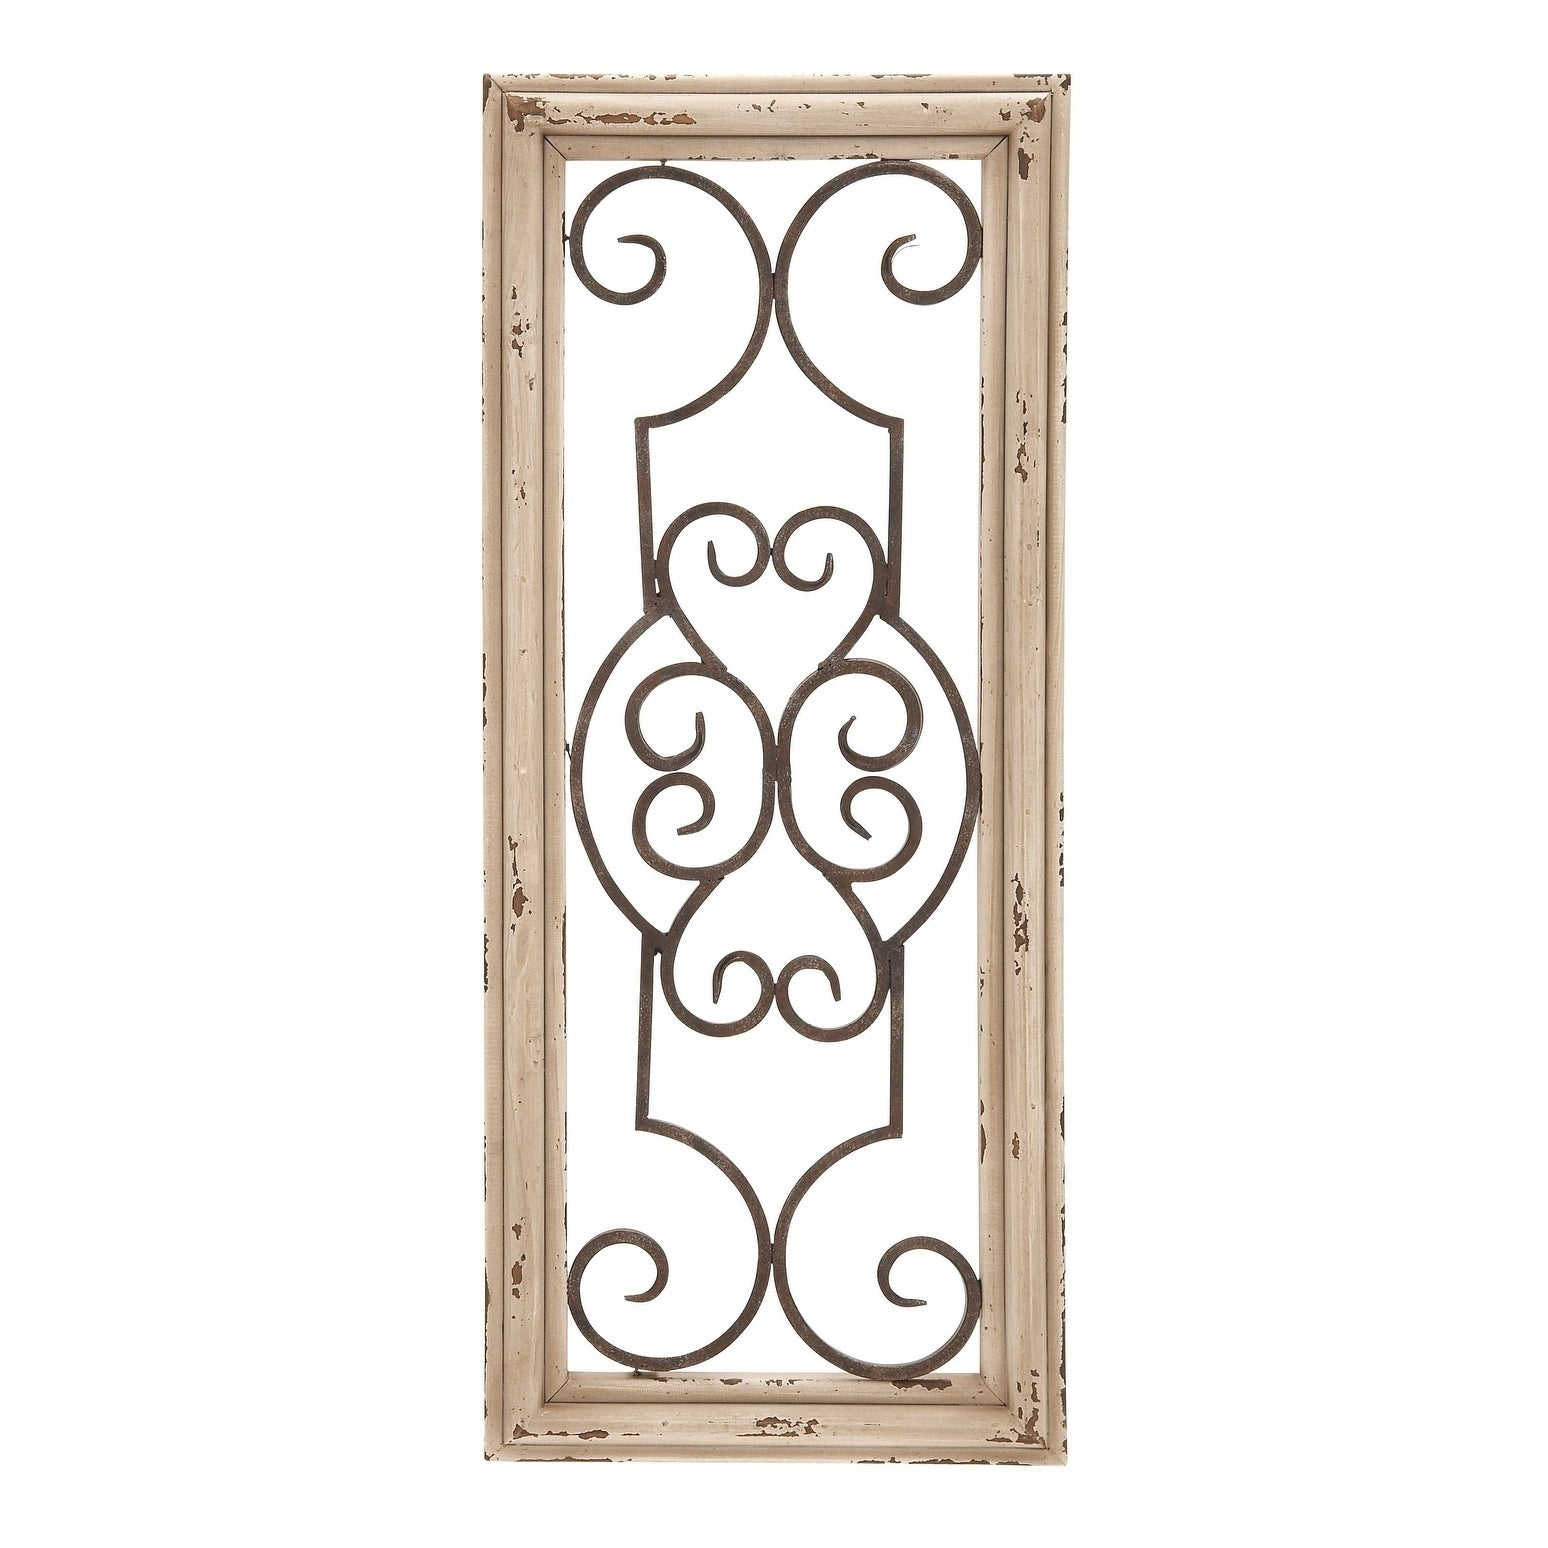 Benzara Wood And Metal Panel Wall Decor, Brown pertaining to Brown Wood And Metal Wall Decor (Image 4 of 30)